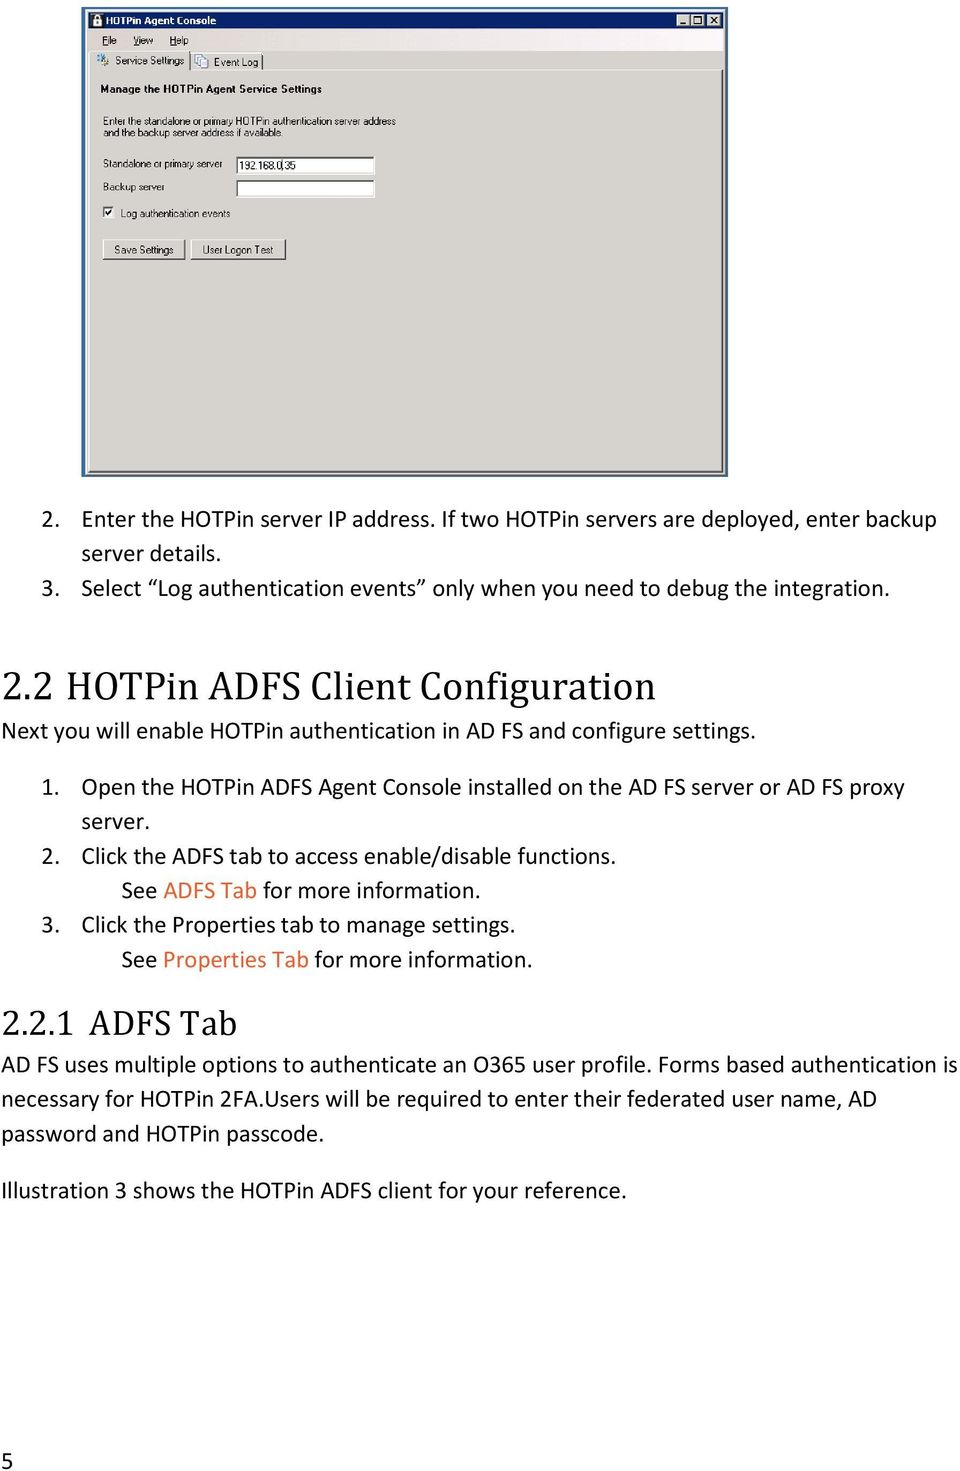 Open the HOTPin ADFS Agent Console installed on the AD FS server or AD FS proxy server. 2. Click the ADFS tab to access enable/disable functions. See ADFS Tab for more information. 3.